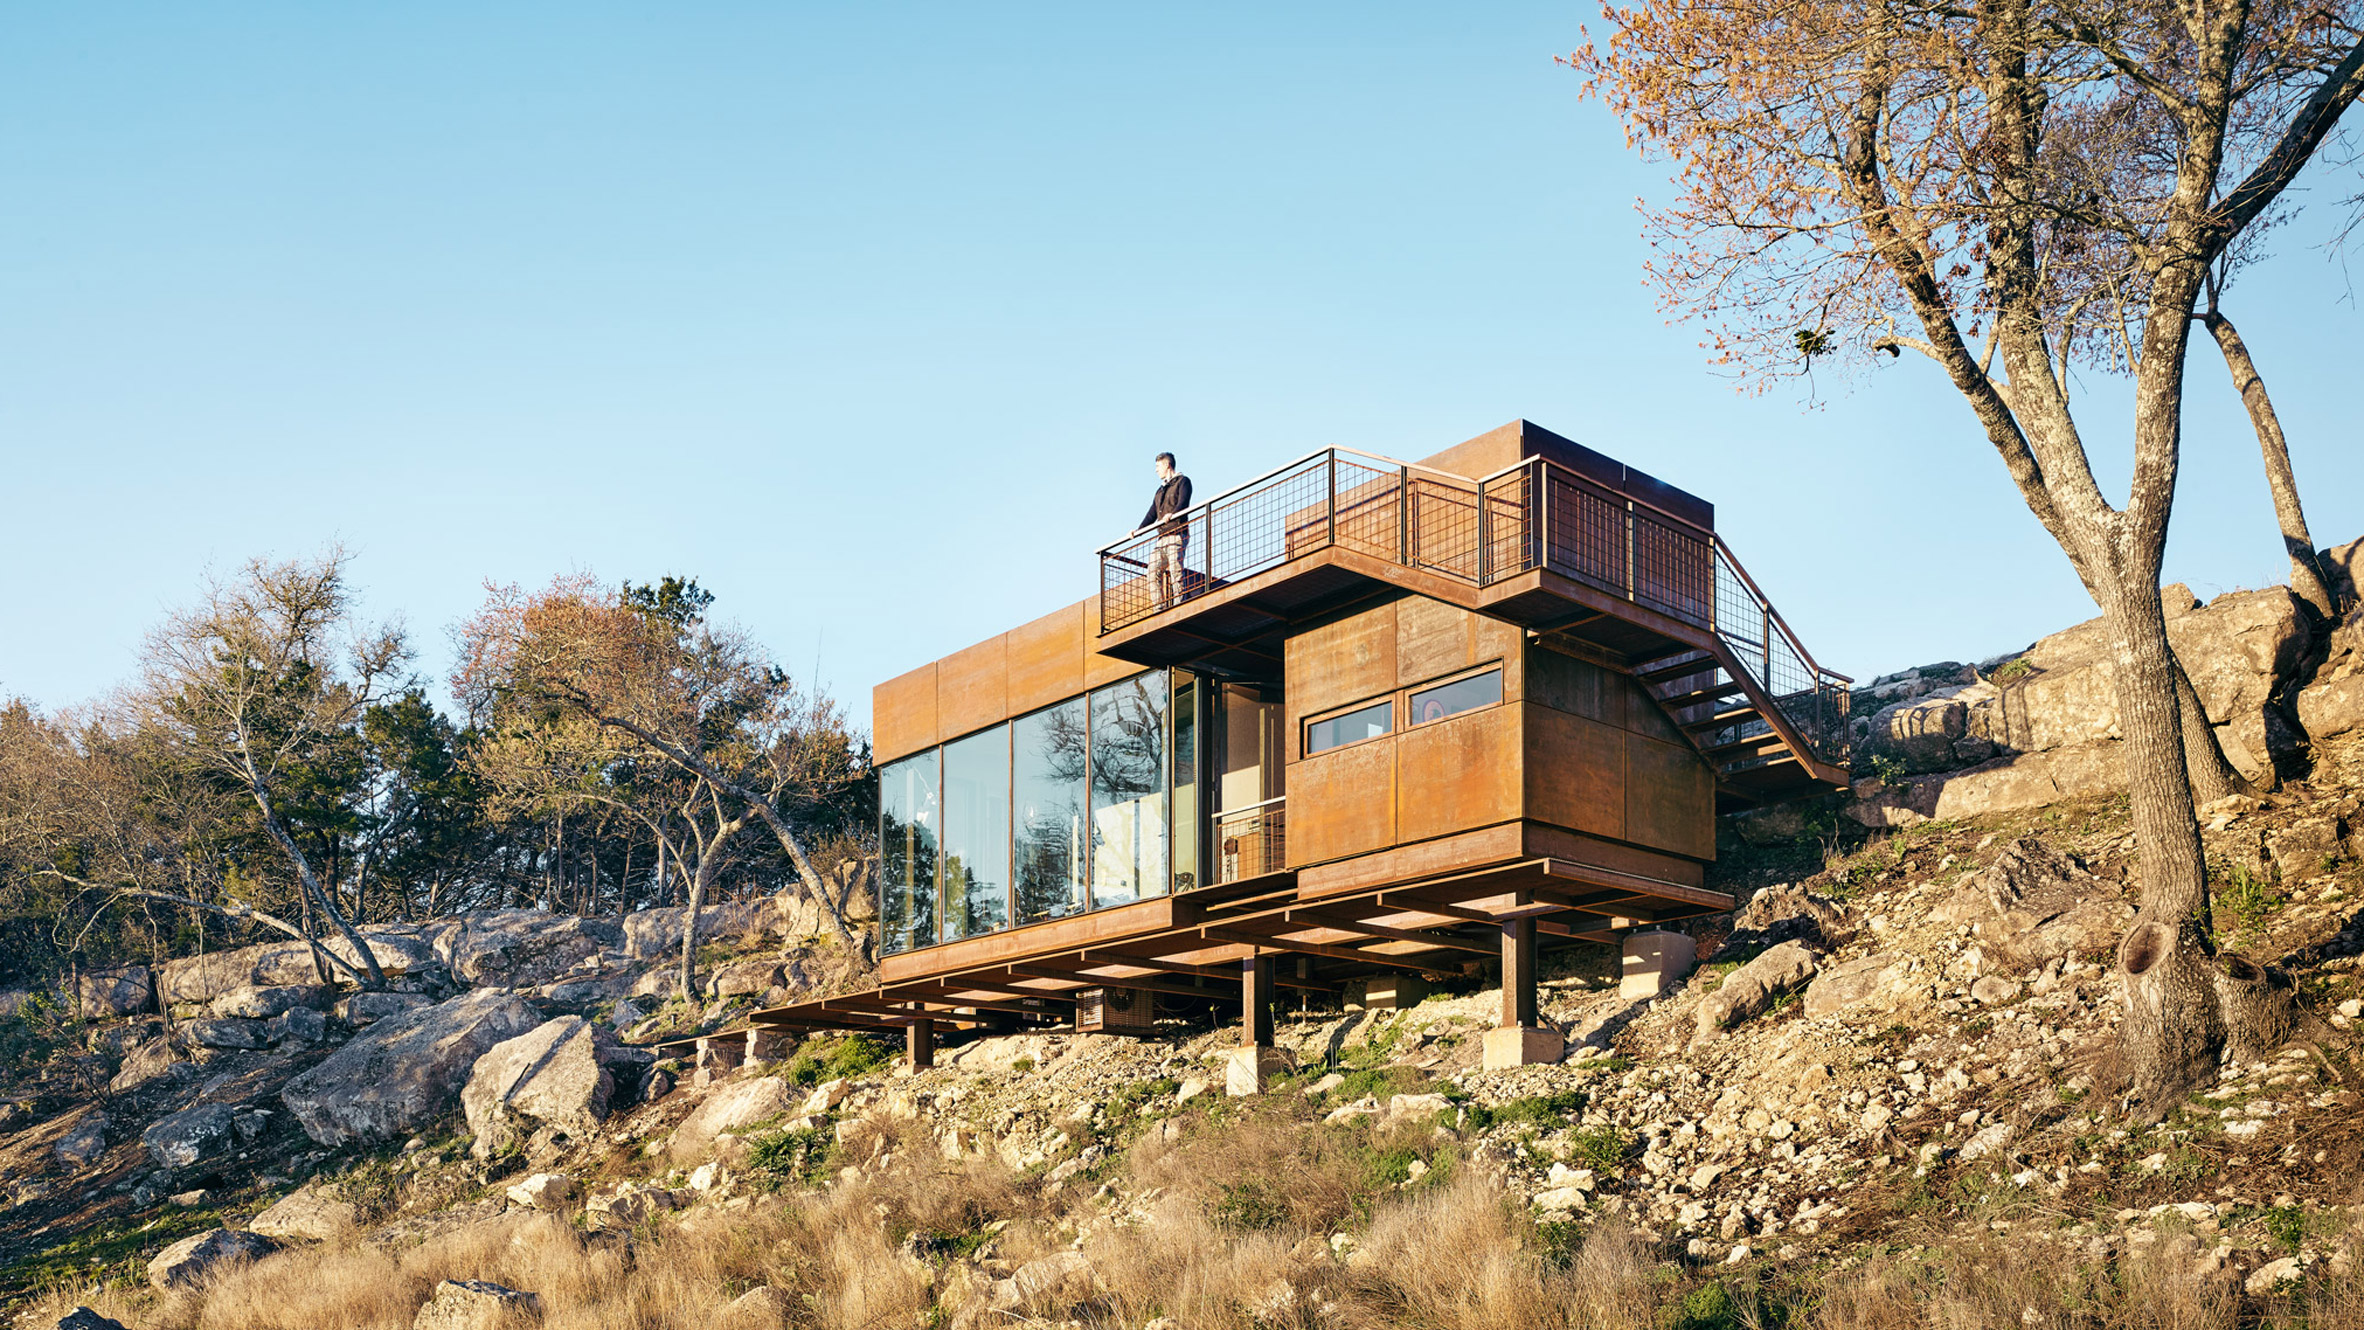 Clear Rock Lookout By Lemmo Provides Vantage Point From Texas Hillside - Tower-house-in-texas-by-andersson-wise-architects